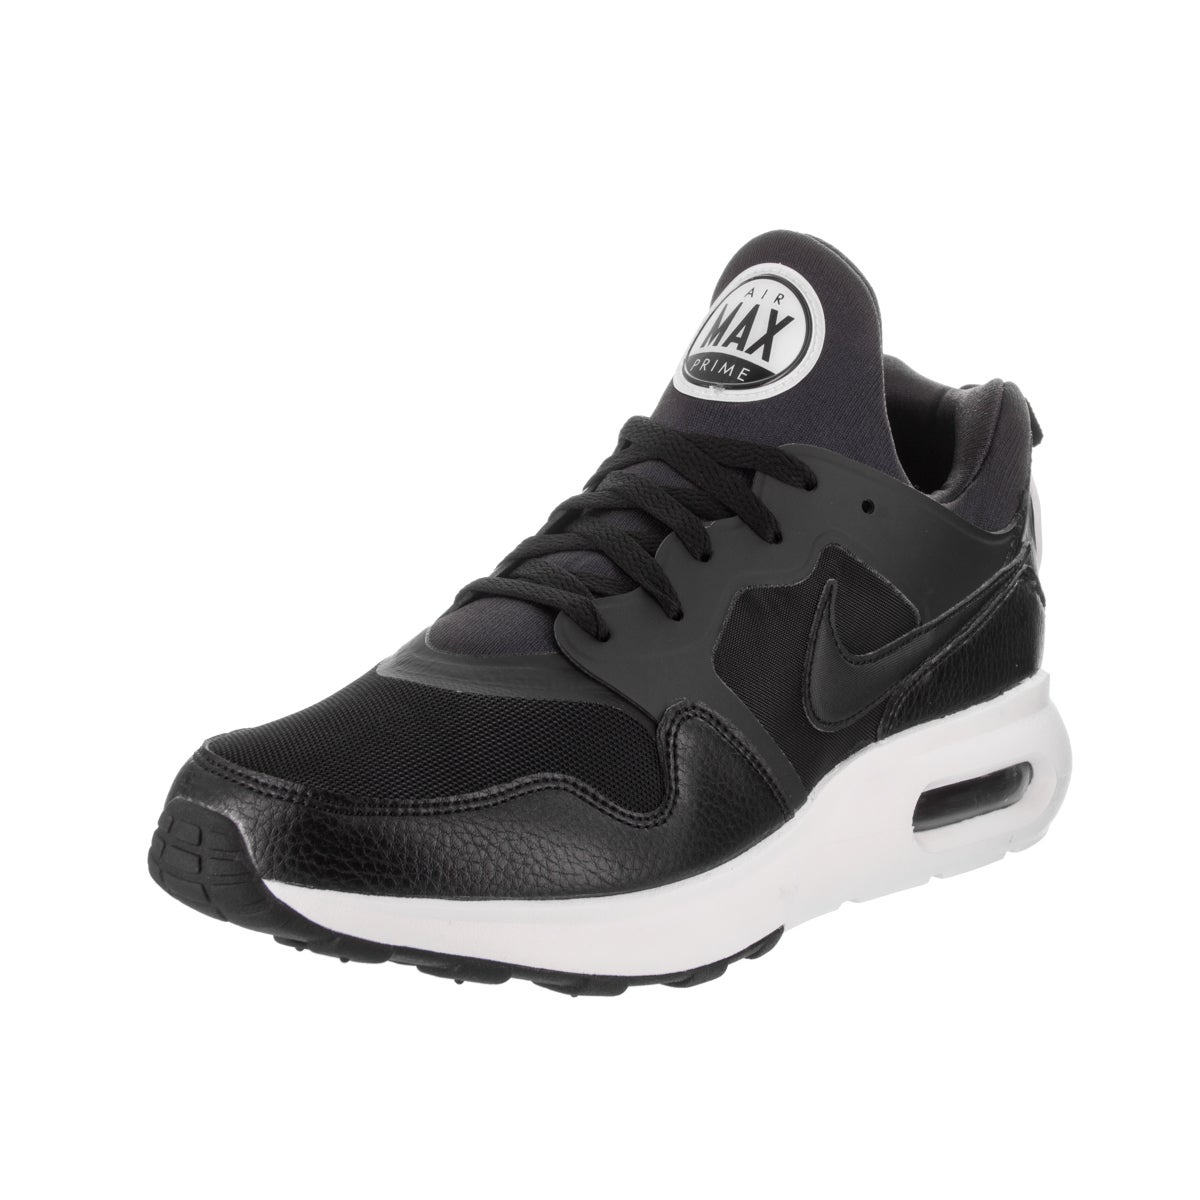 Nike Men's Air Max Prime Running Shoe (8.5), Black (leather)